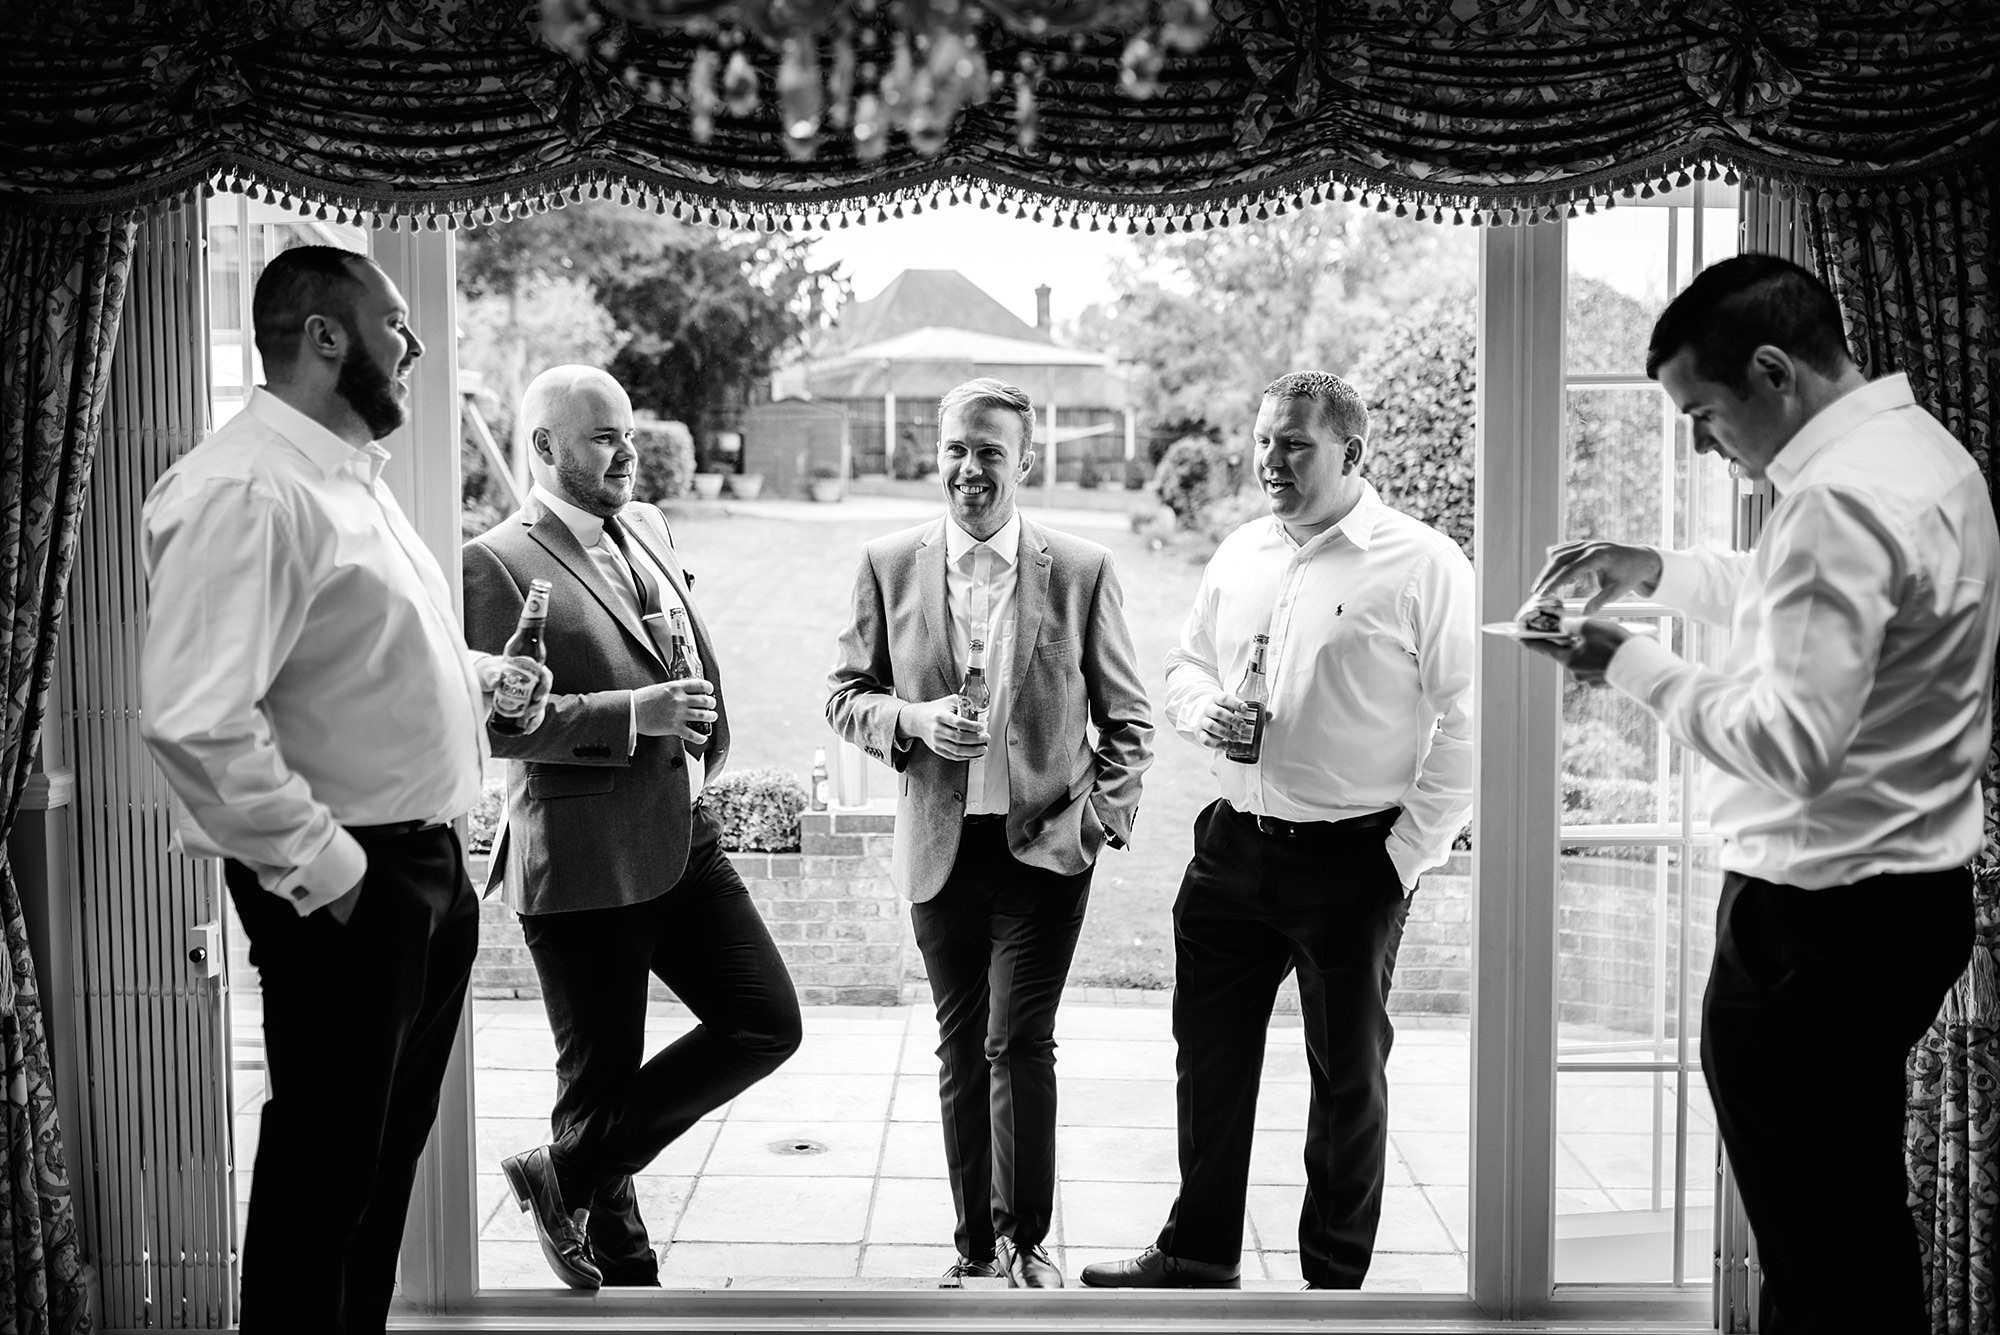 Fun London Wedding groomsmen chat together while getting ready ahead of brixton wedding